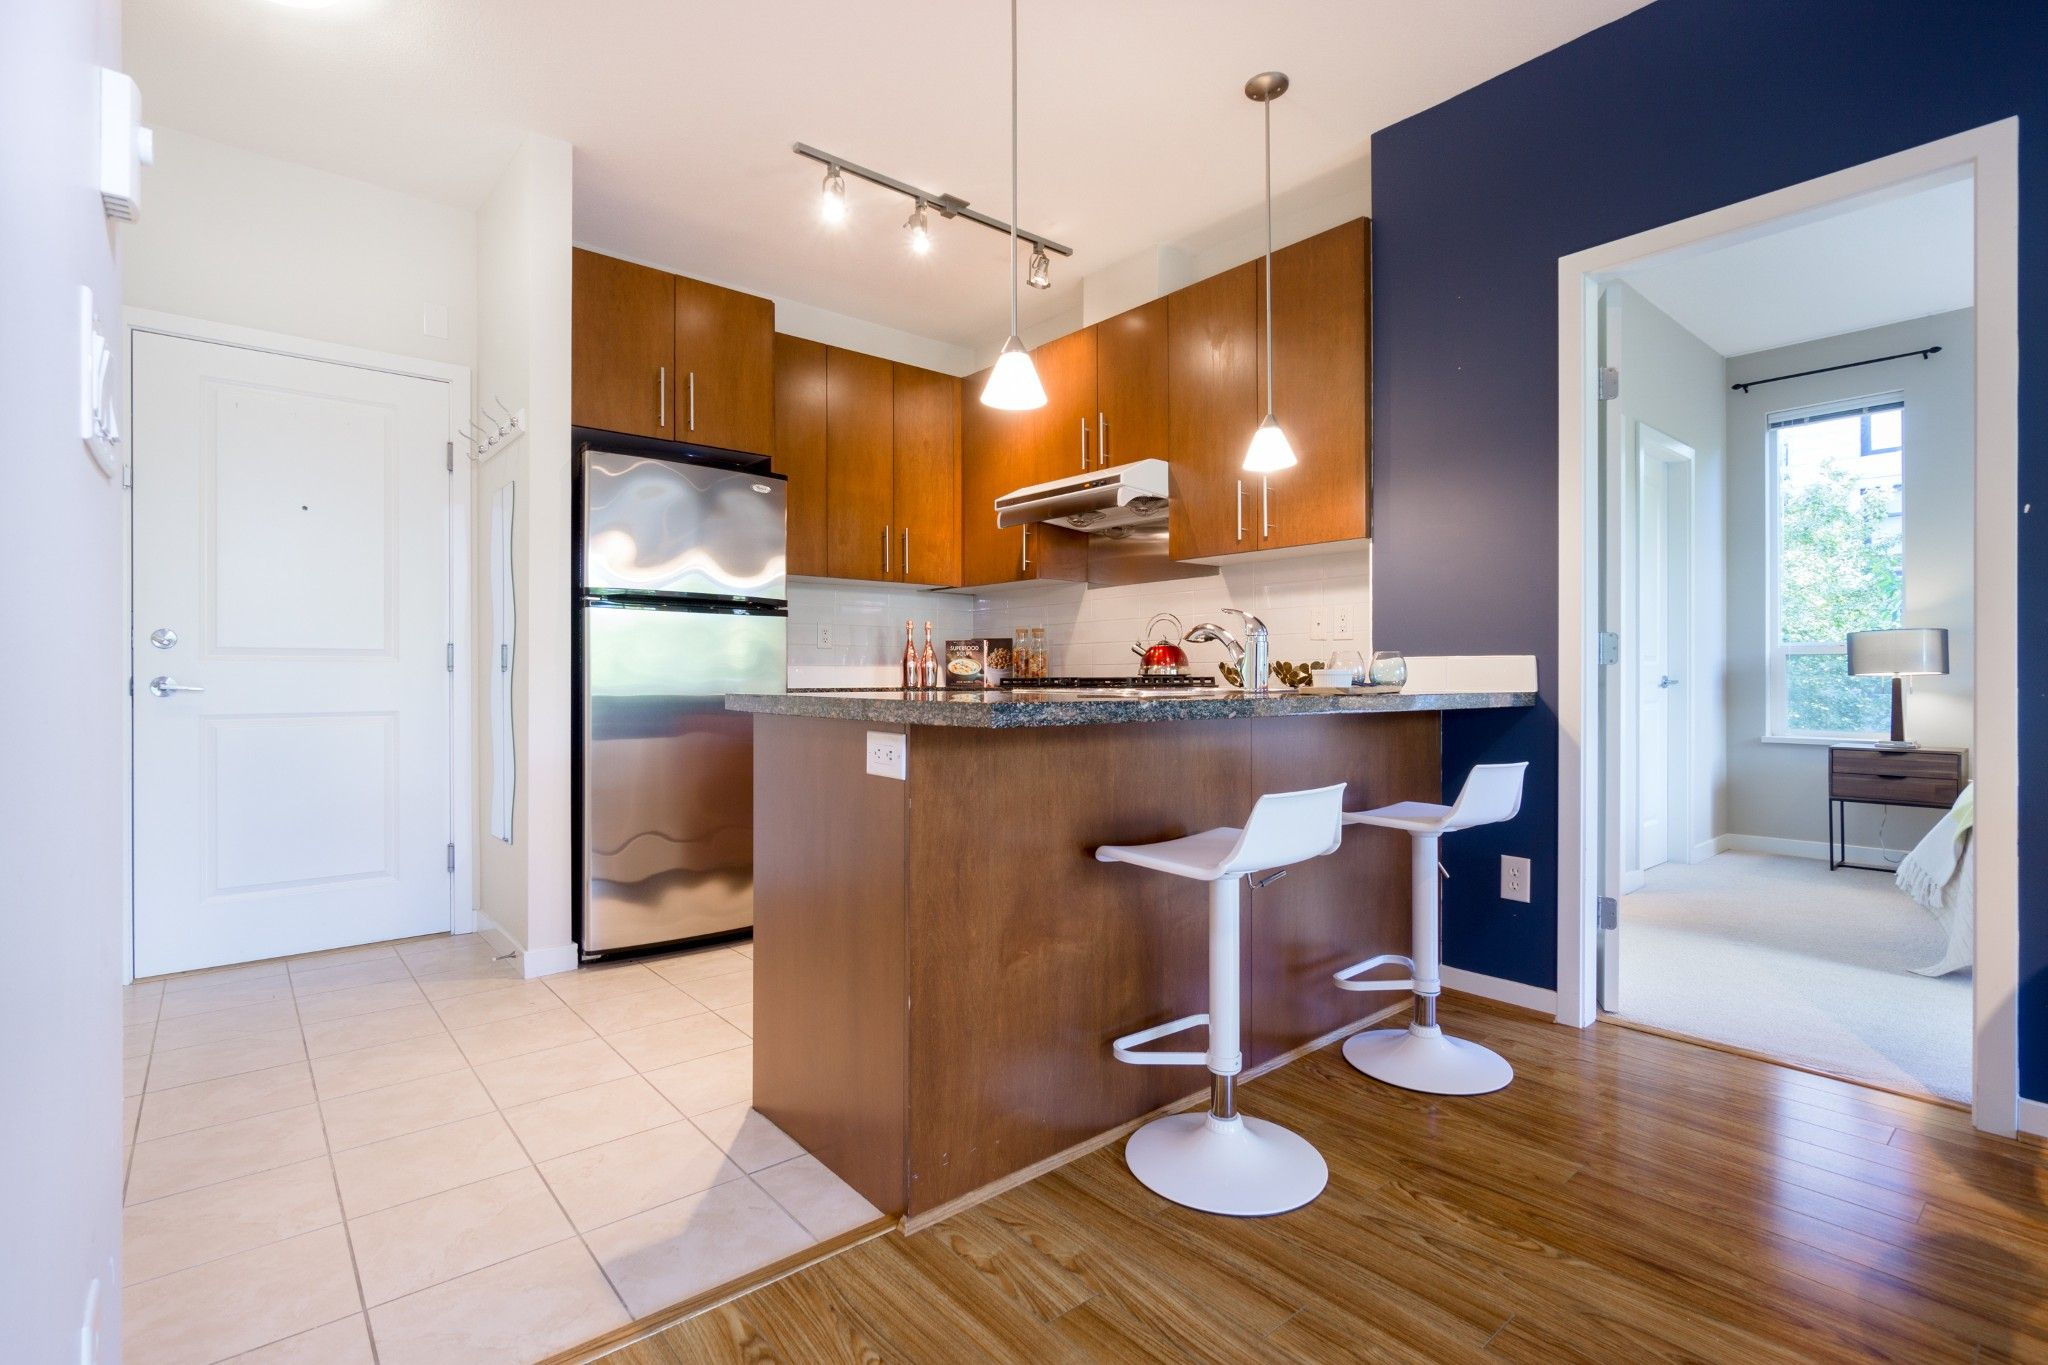 Photo 9: Photos: 208 3551 FOSTER Avenue in Vancouver: Collingwood VE Condo for sale (Vancouver East)  : MLS®# R2291555